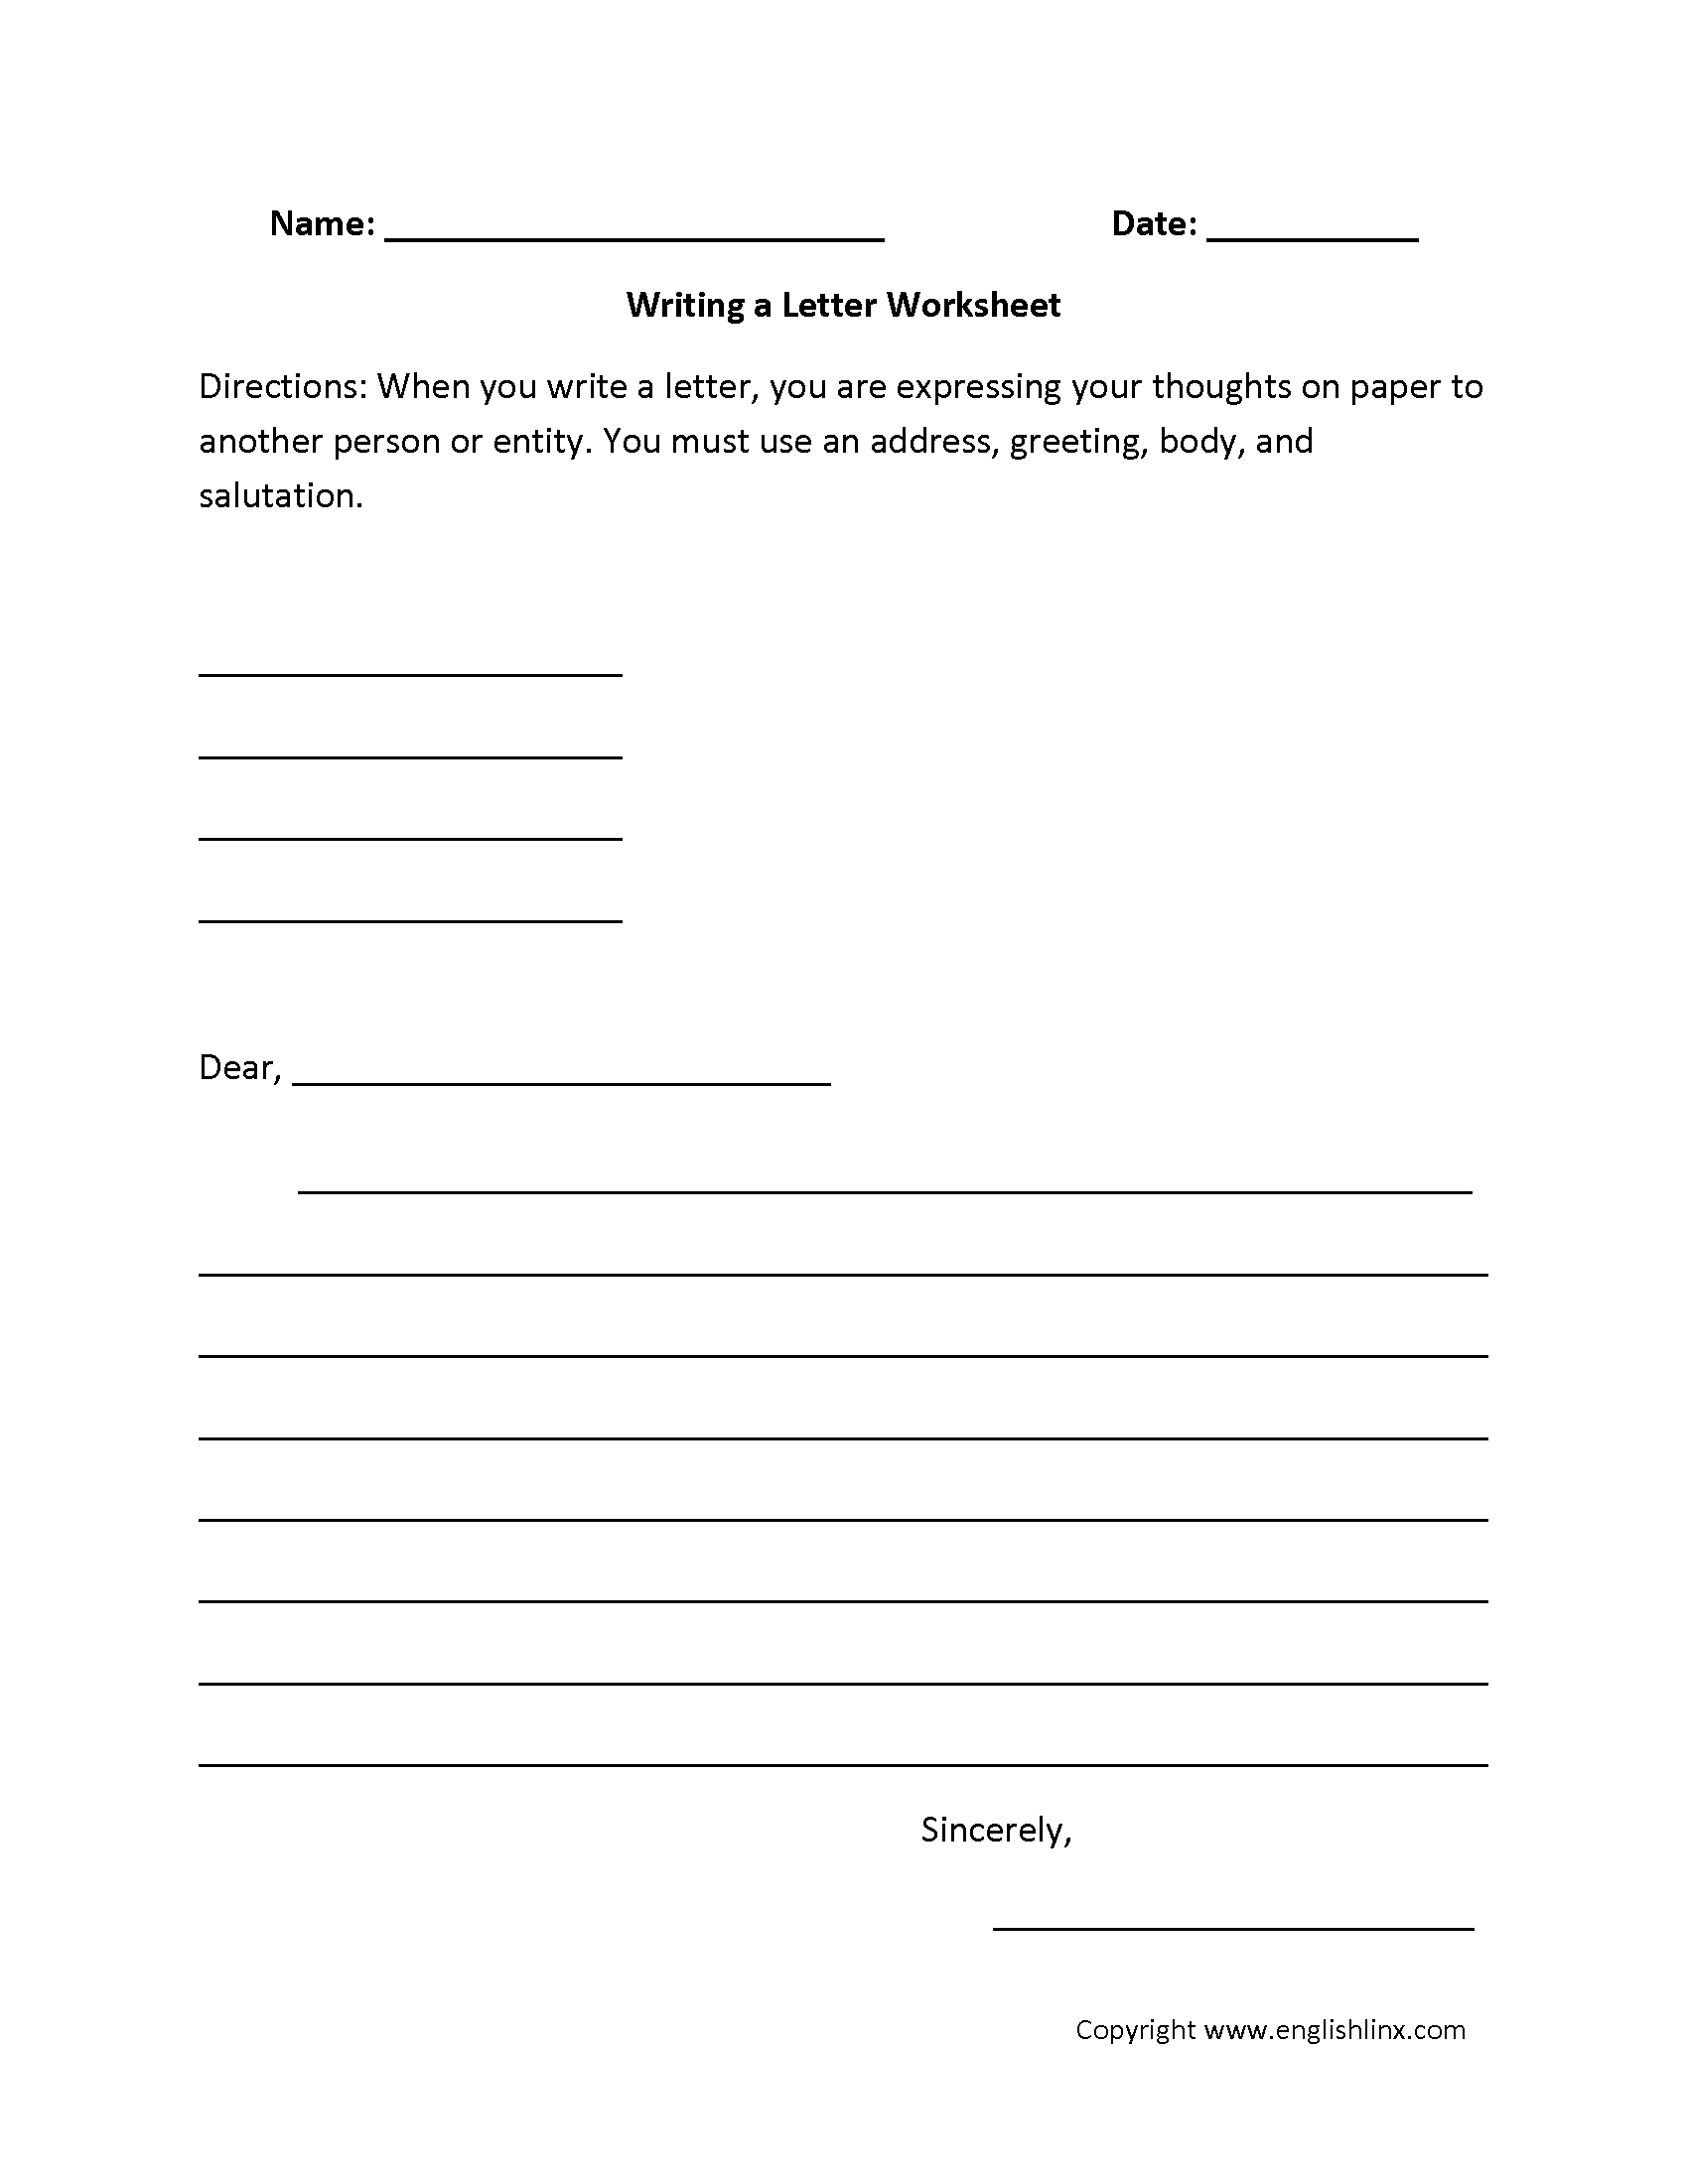 worksheet 10th Grade Worksheets englishlinx com writing worksheets worksheet